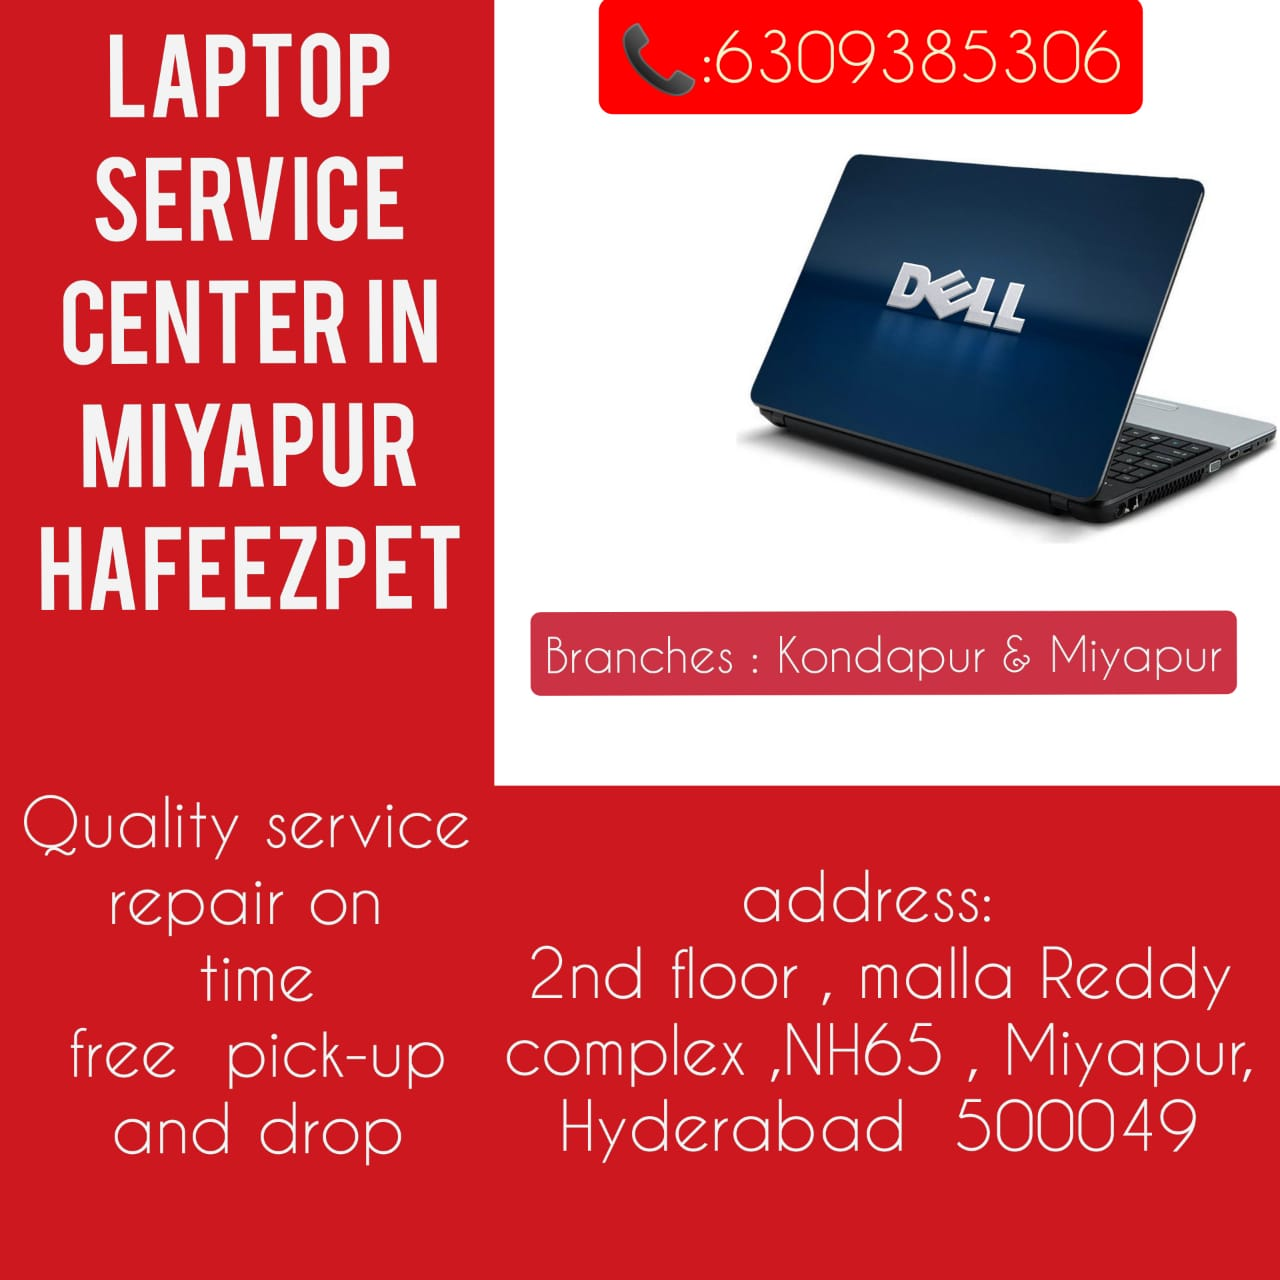 Dell Laptop Service Center In Hyderabad in Adilabad